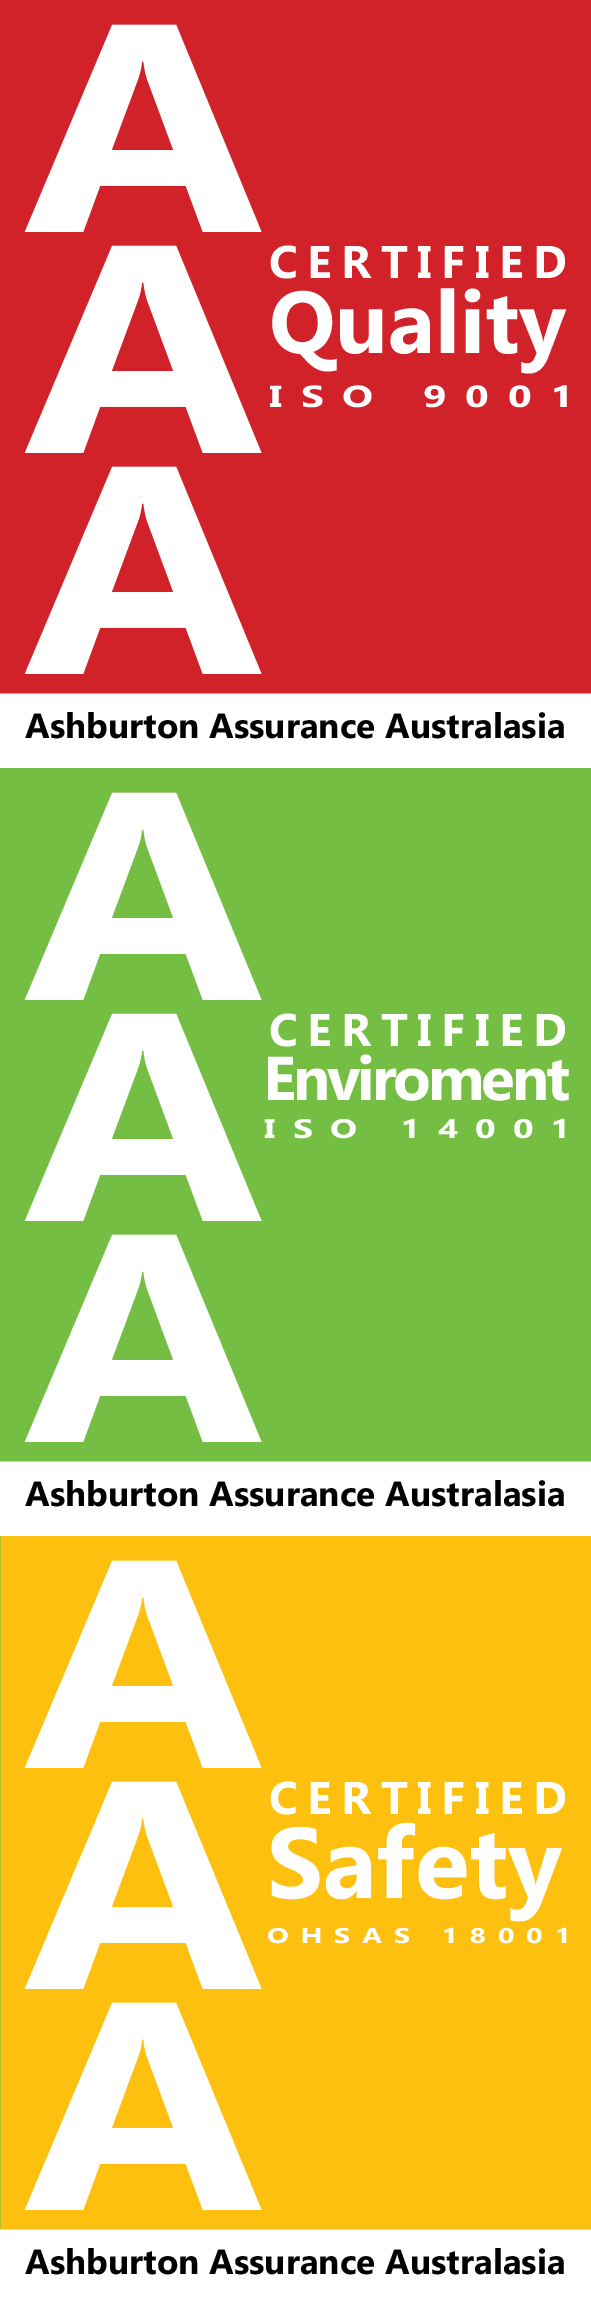 certification1023